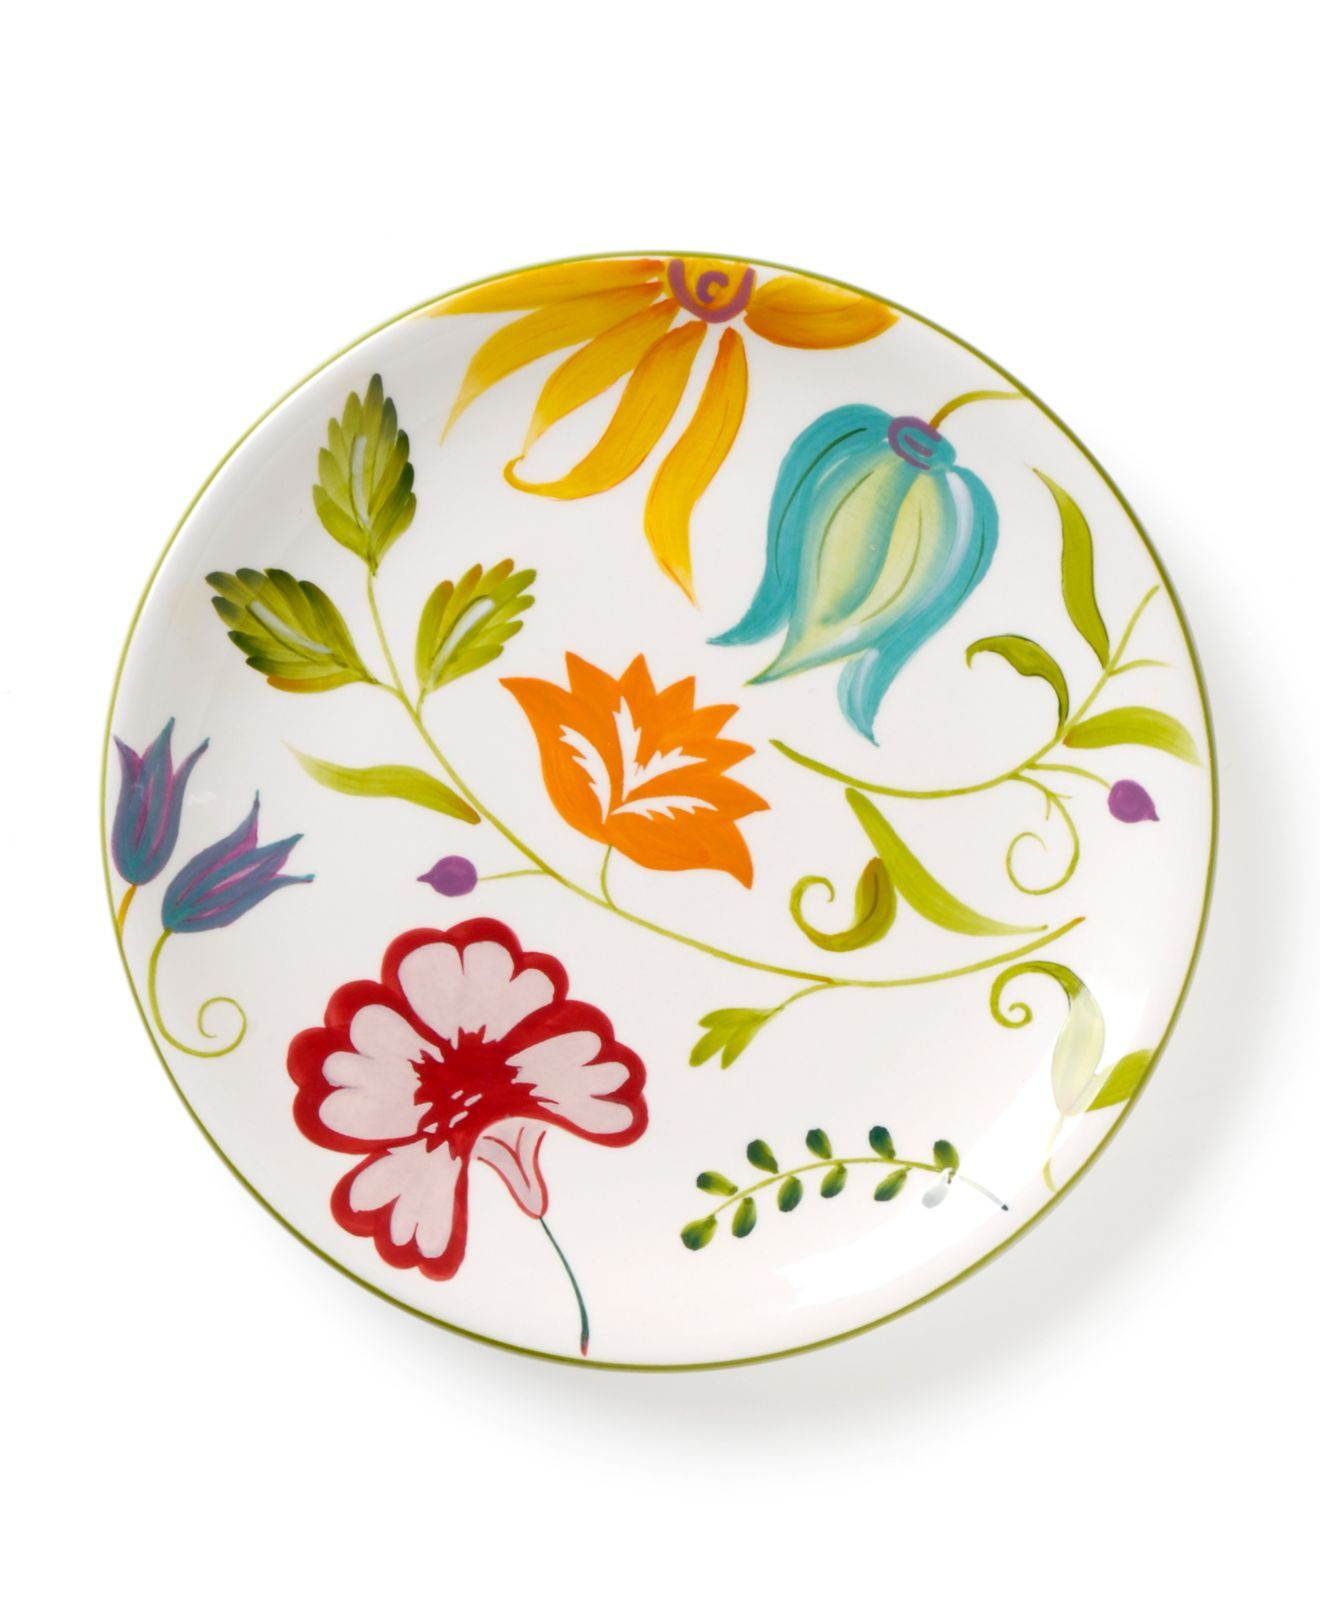 Clay Art Dinnerware, Set Of 4 Floral Salad Plates